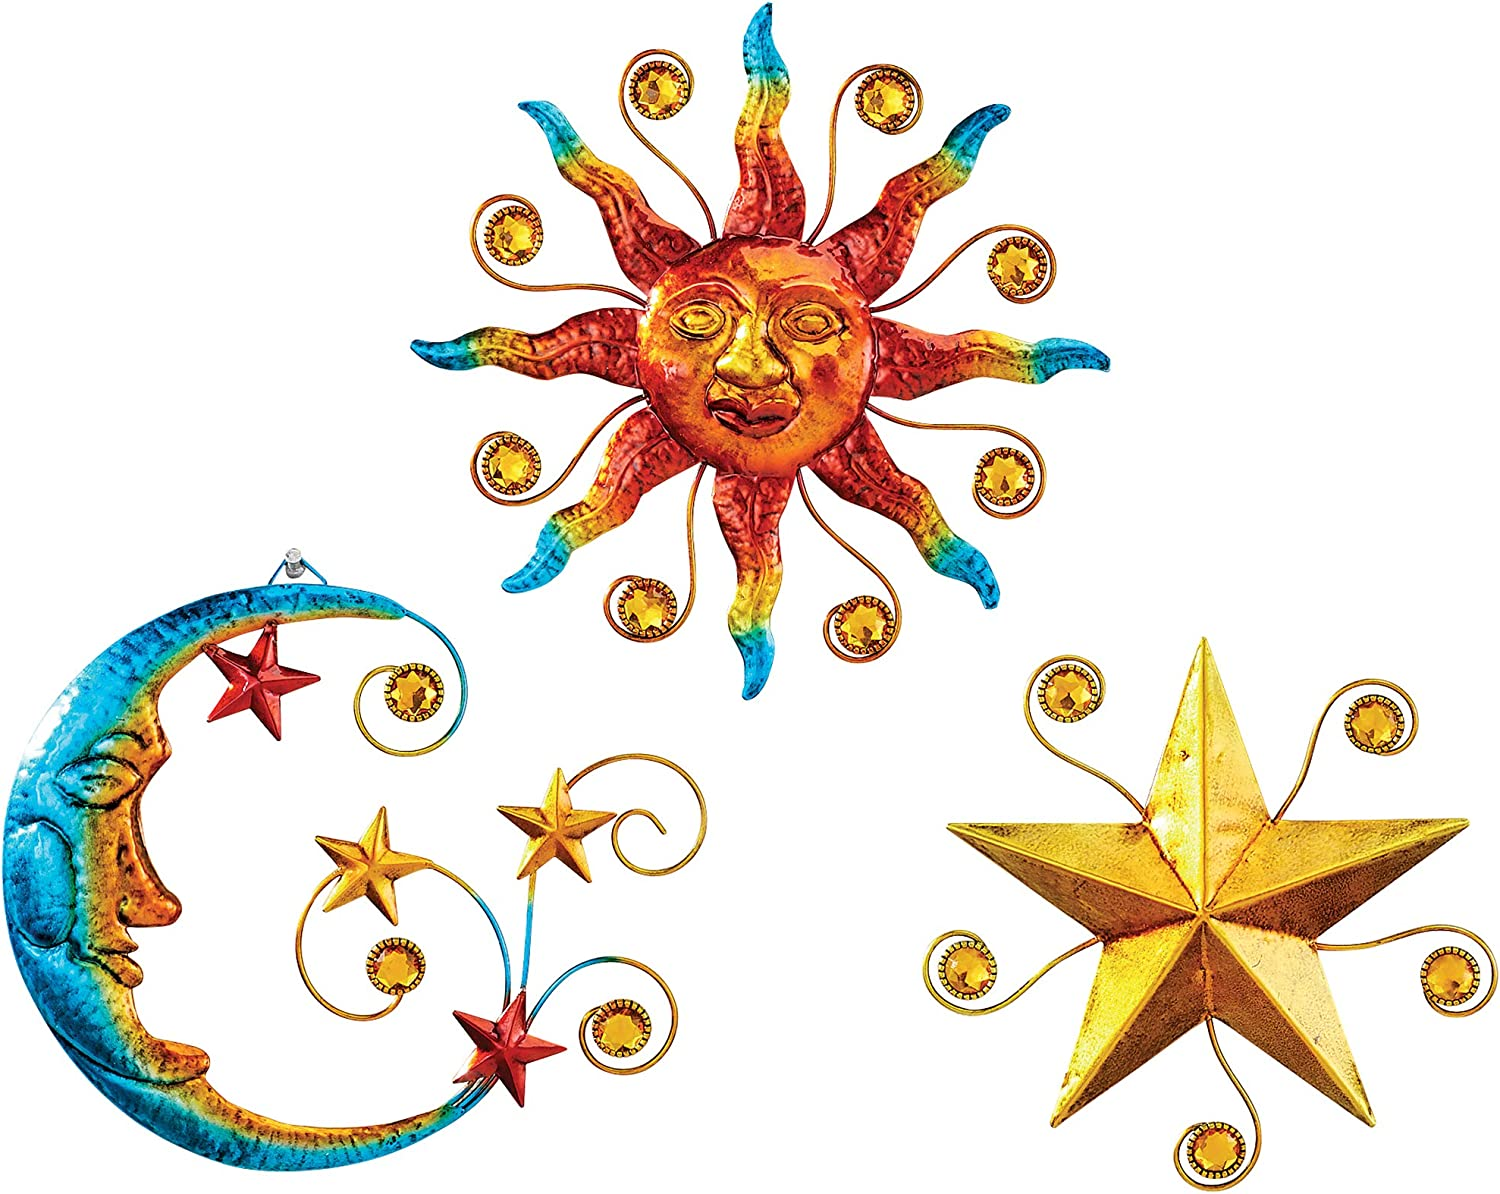 Star Moon Collections Etc Celestial Wall Trio Decorative Sculptures Hook on Back for Easy Hanging for Indoor Outdoor Use 8 L x 8 H Beads Includes Sun Metal